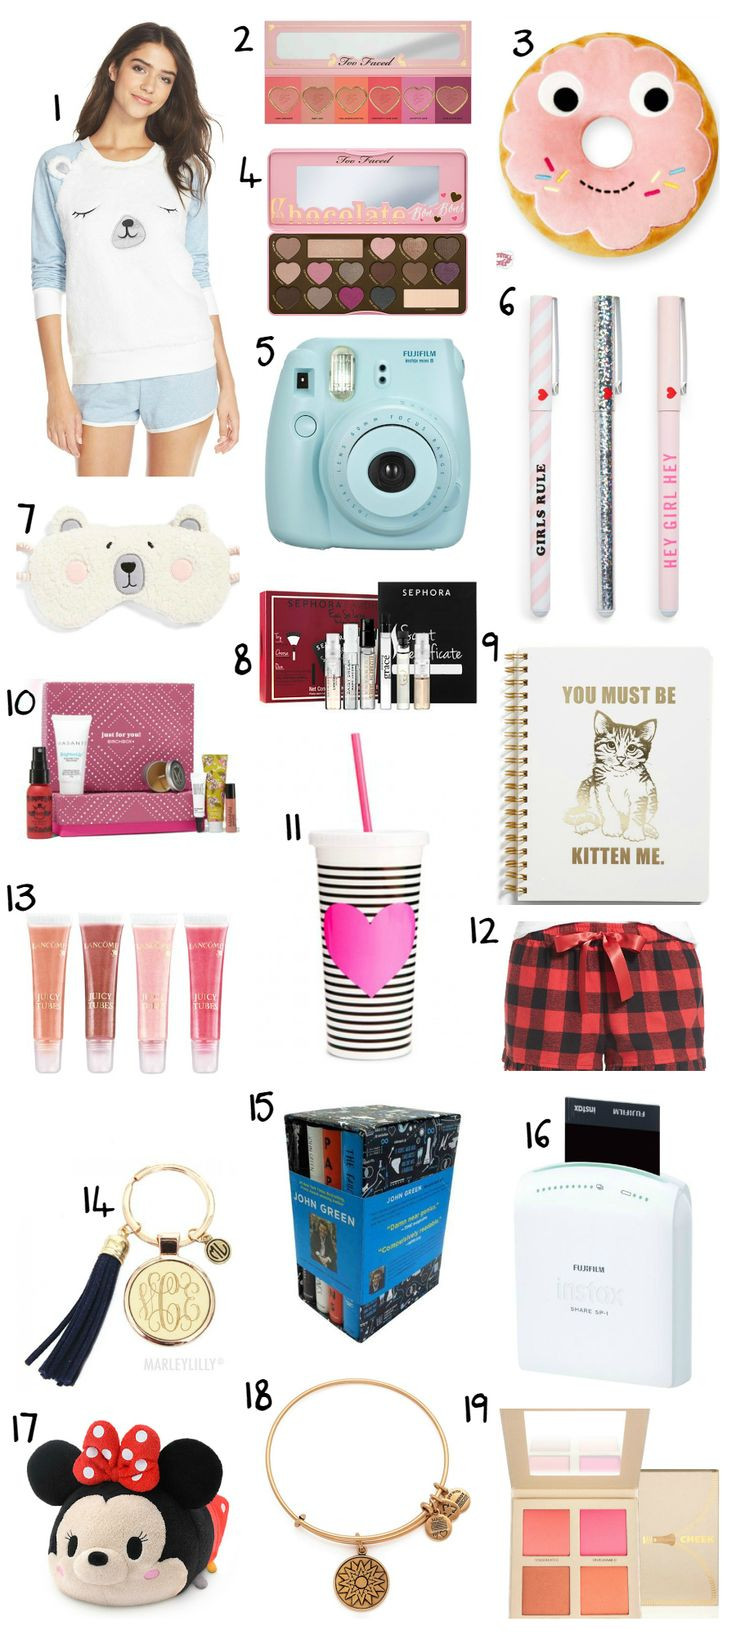 Best ideas about Teenage Girlfriend Gift Ideas . Save or Pin 25 unique Teen girl ts ideas on Pinterest Now.